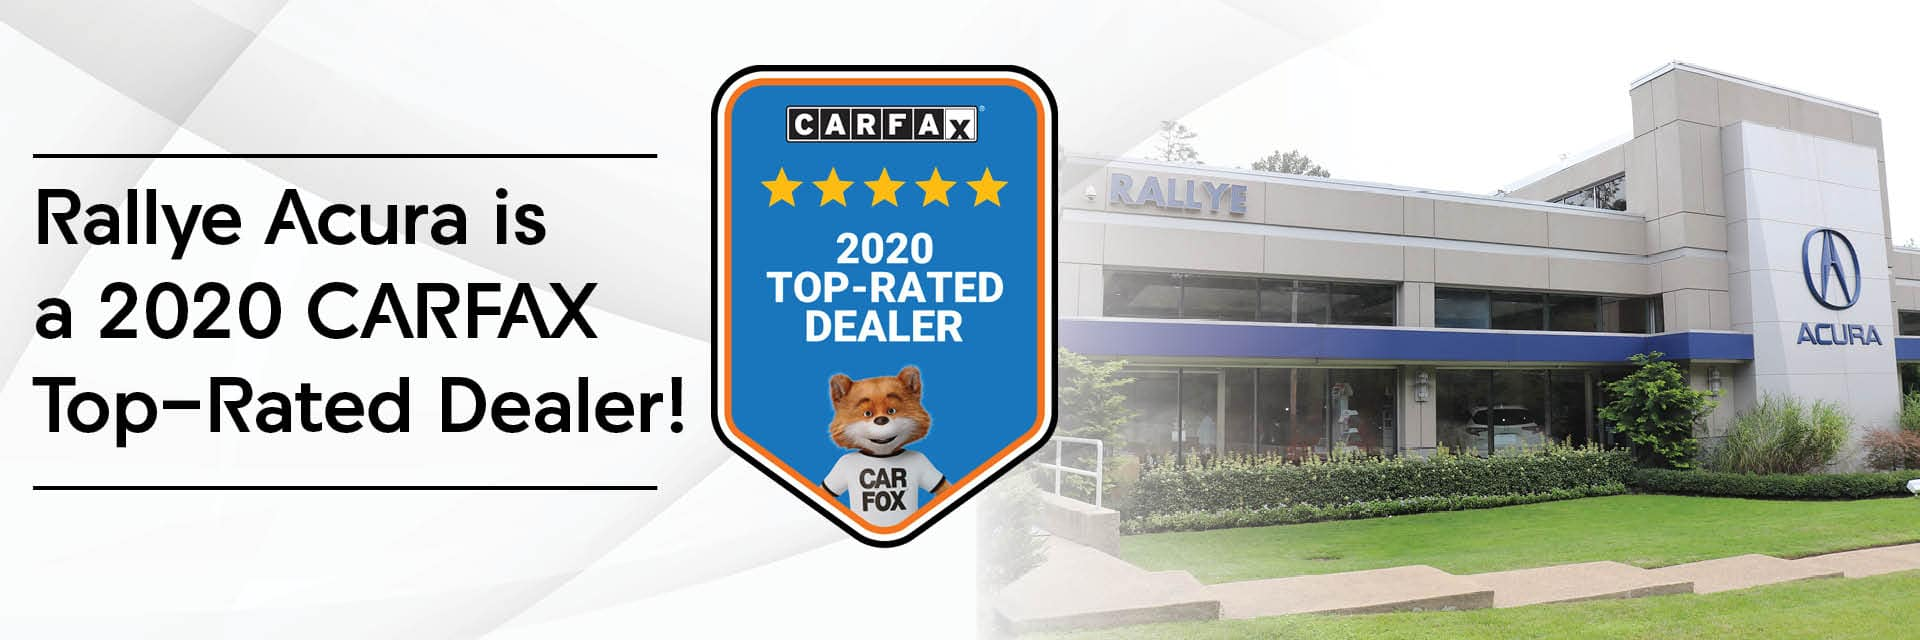 RallAC-293 CarFax Top-Rated Dealer Banners